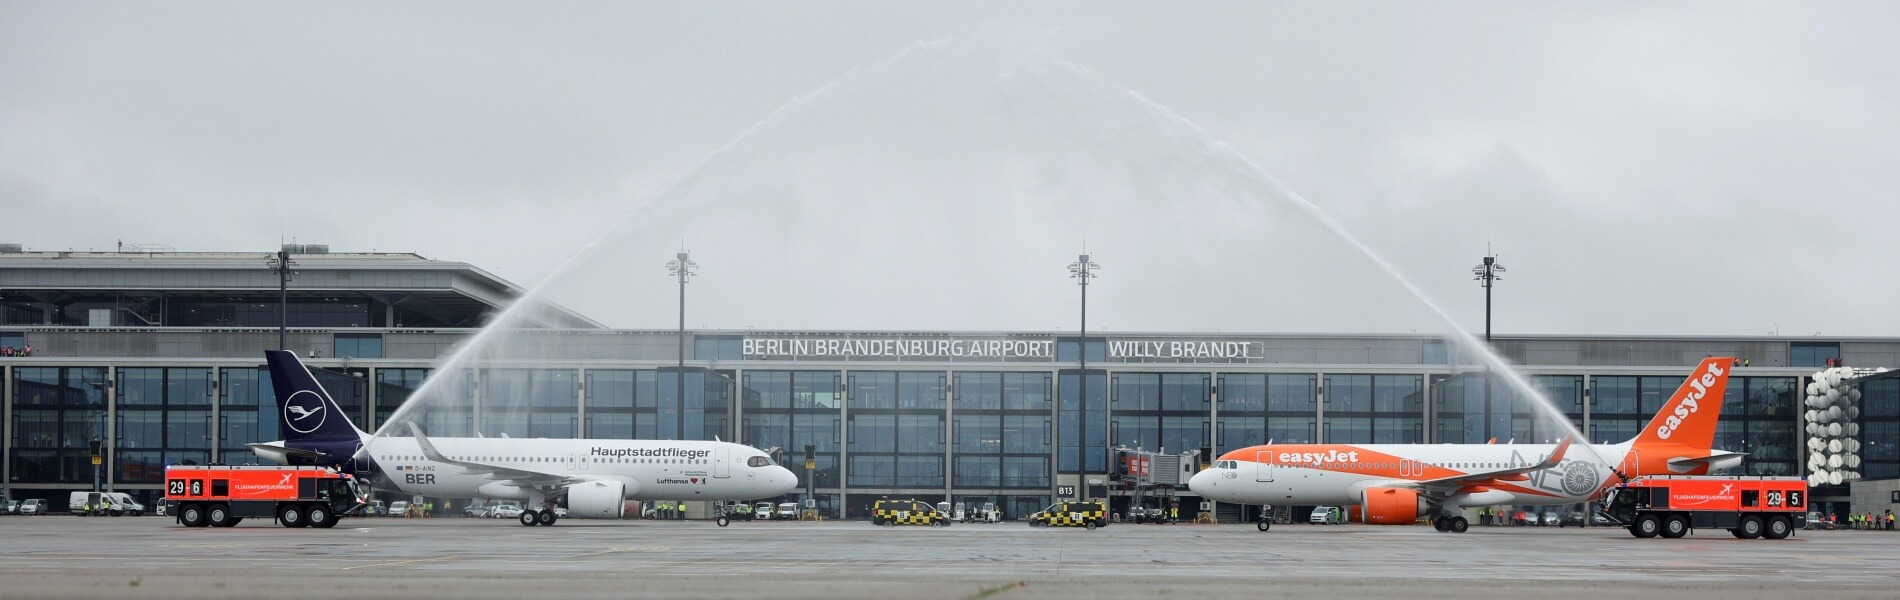 Berlin Brandenburg Airport starts operations